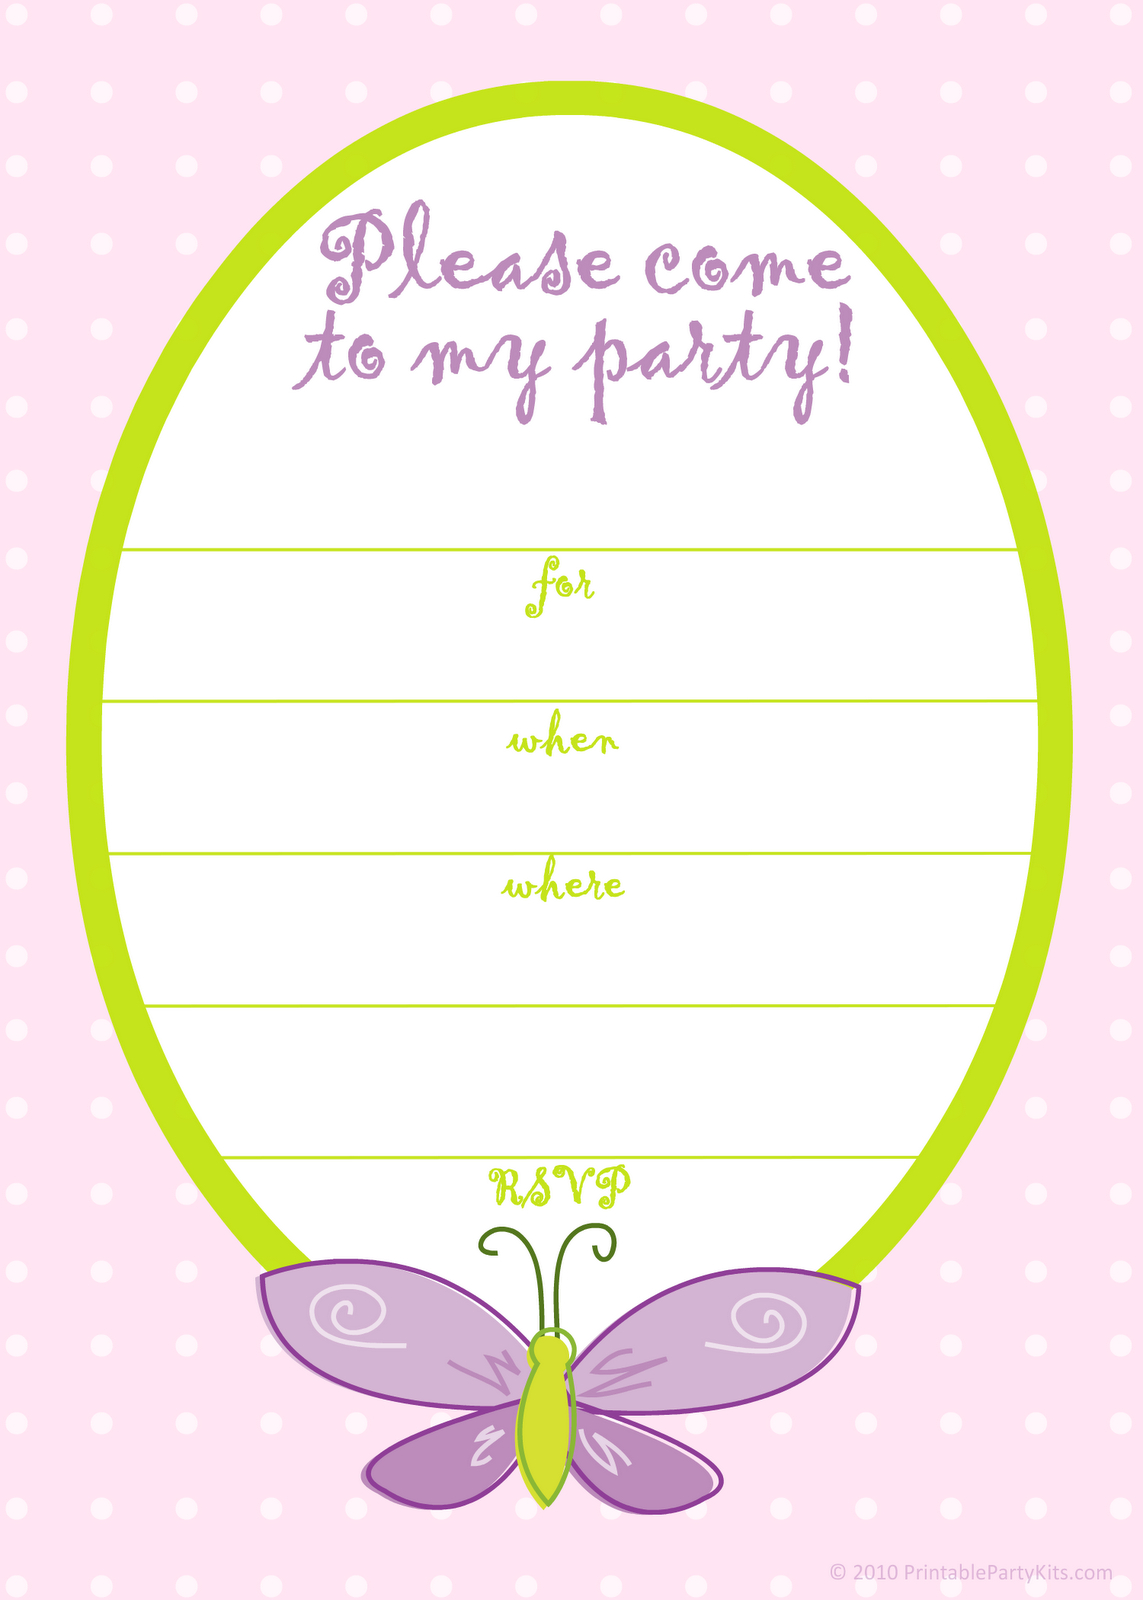 Free Printable Birthday Card Invitation Templates | Invitations In - Free Printable Girl Birthday Invitations